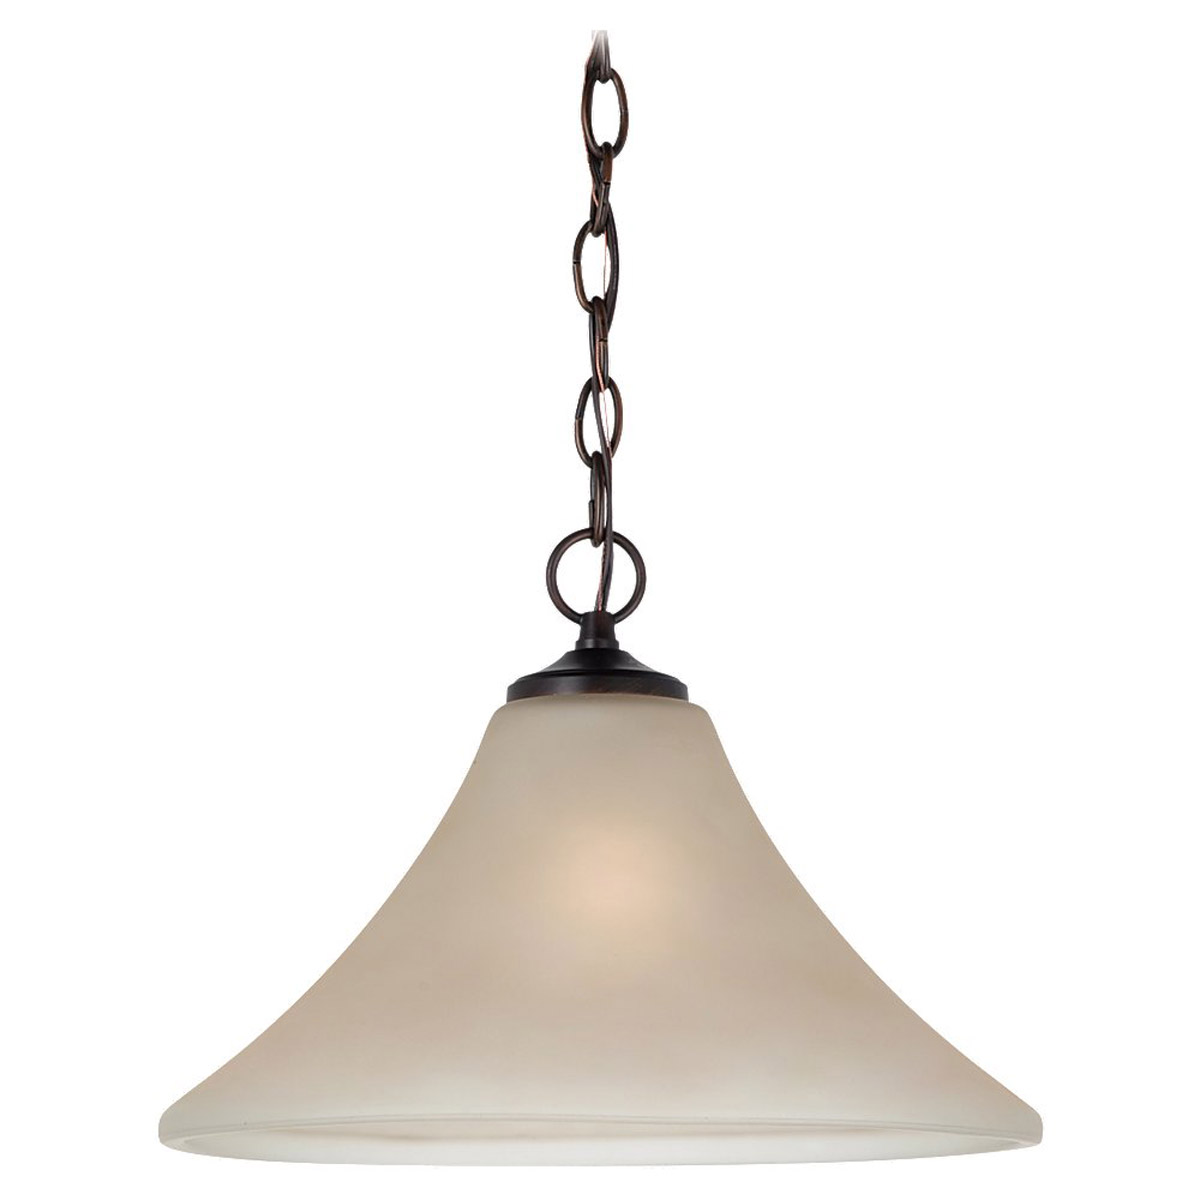 Sea Gull 65180BLE-710 Montreal 1 Light 14 inch Burnt Sienna Pendant Down Light Ceiling Light in Cafe Tint Glass, Fluorescent photo